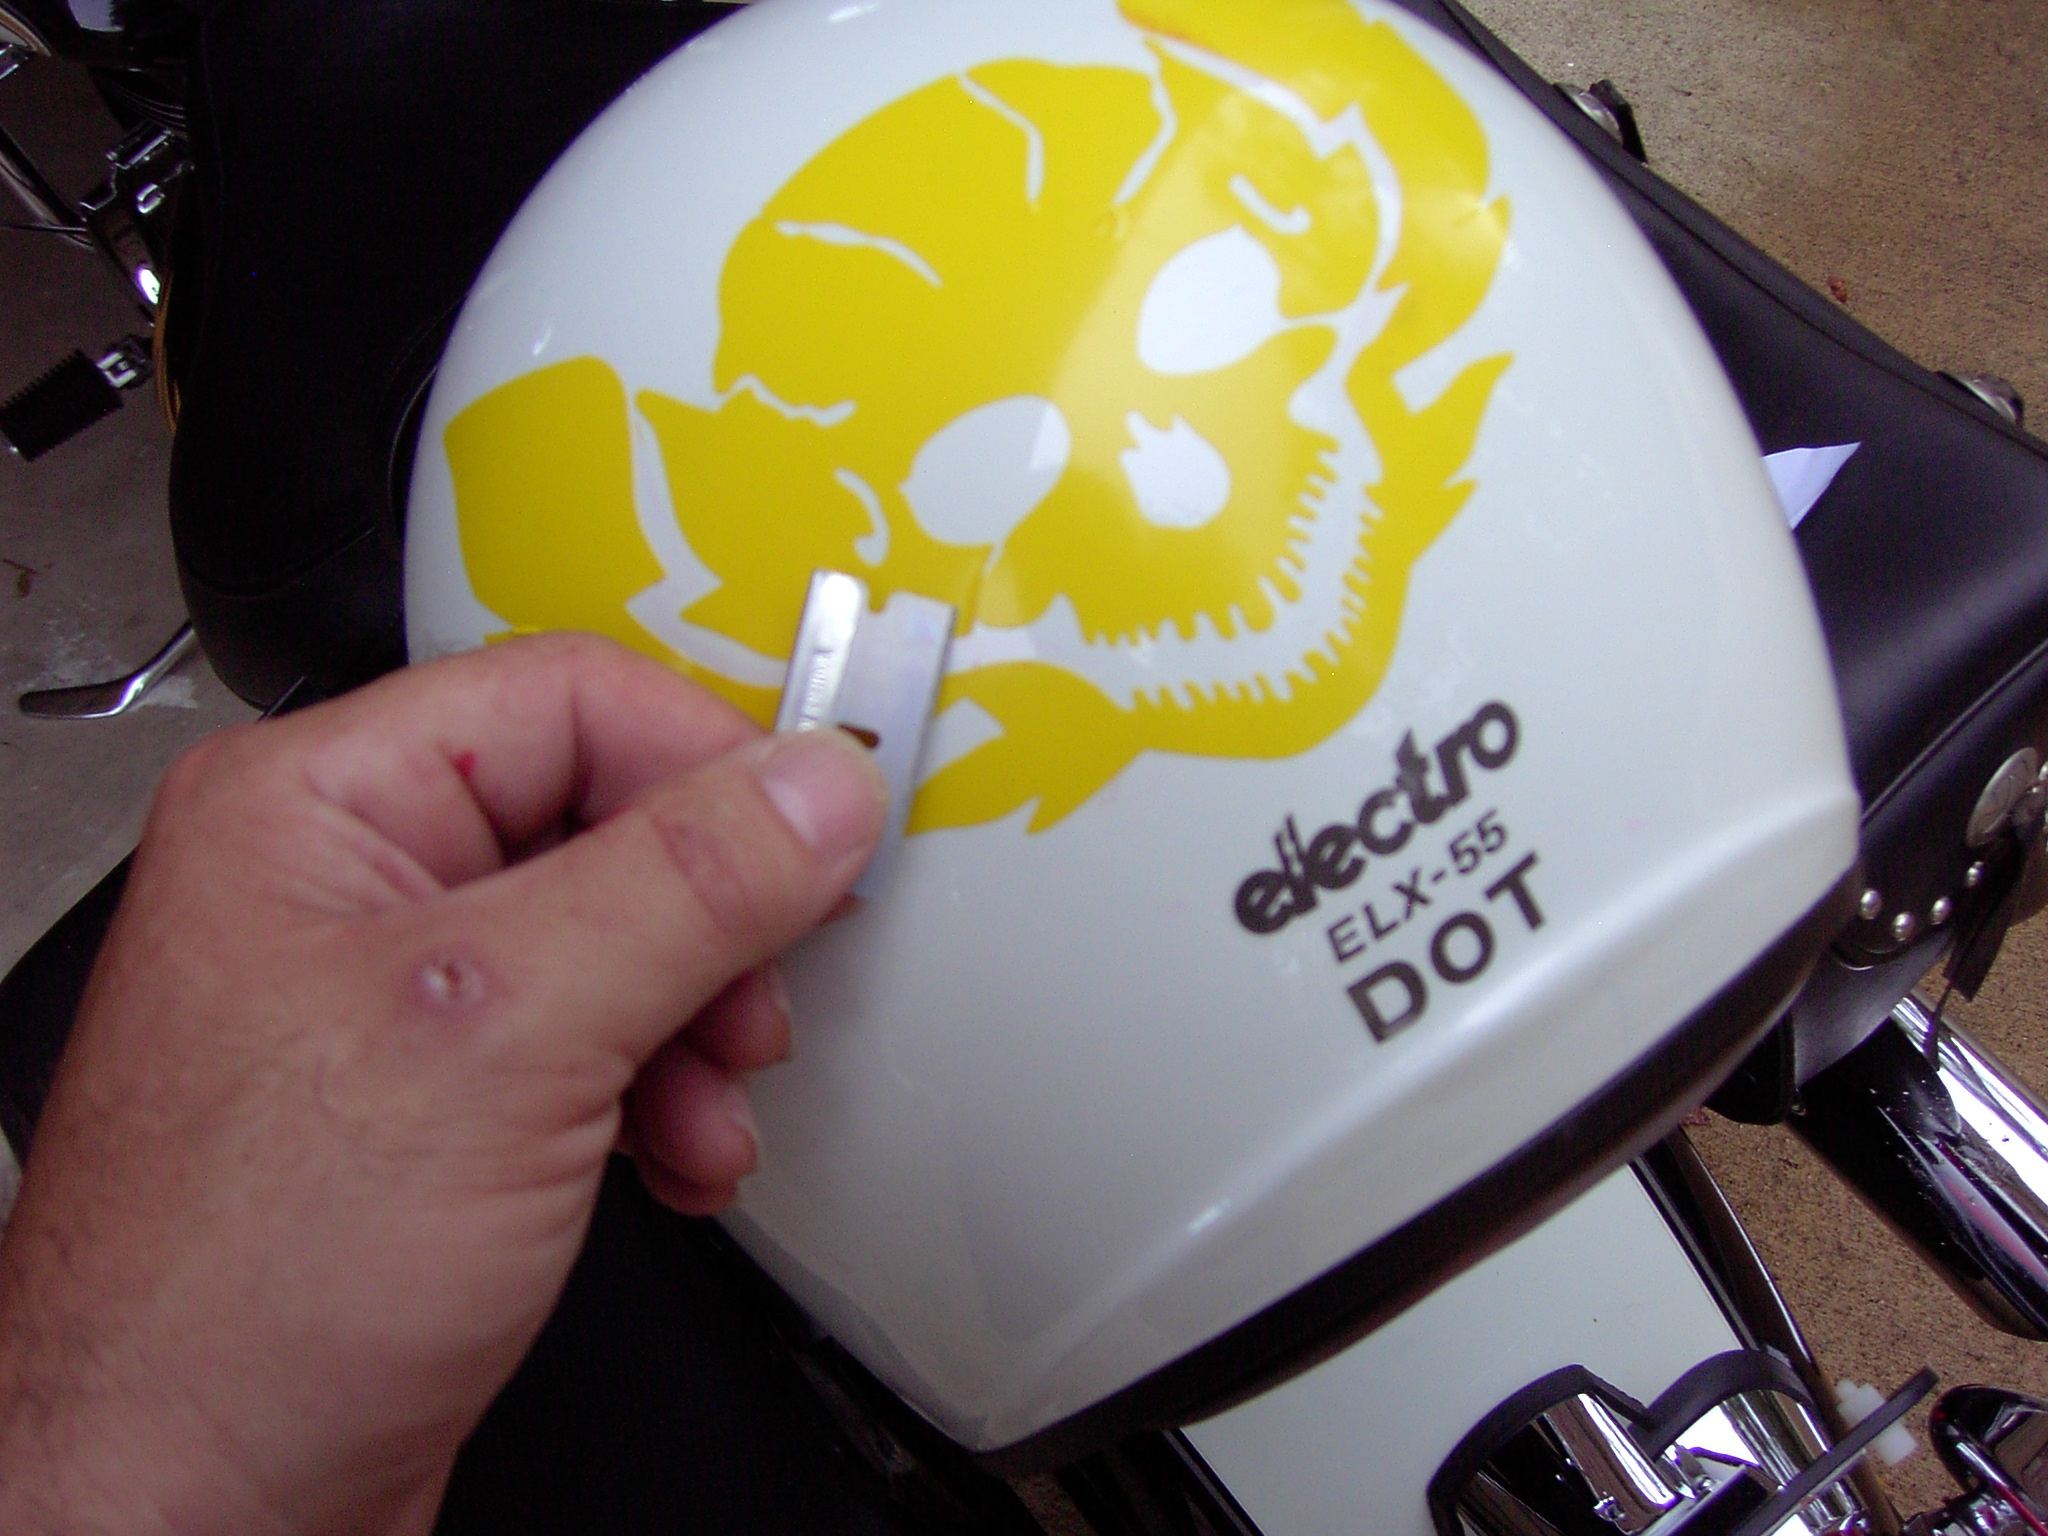 Custom Stickers For Bike Helmets Bicycle Model Ideas - Custom motorcycle helmet stickers and decalsbicycle helmet decals new ideas for you in bikes and cycle